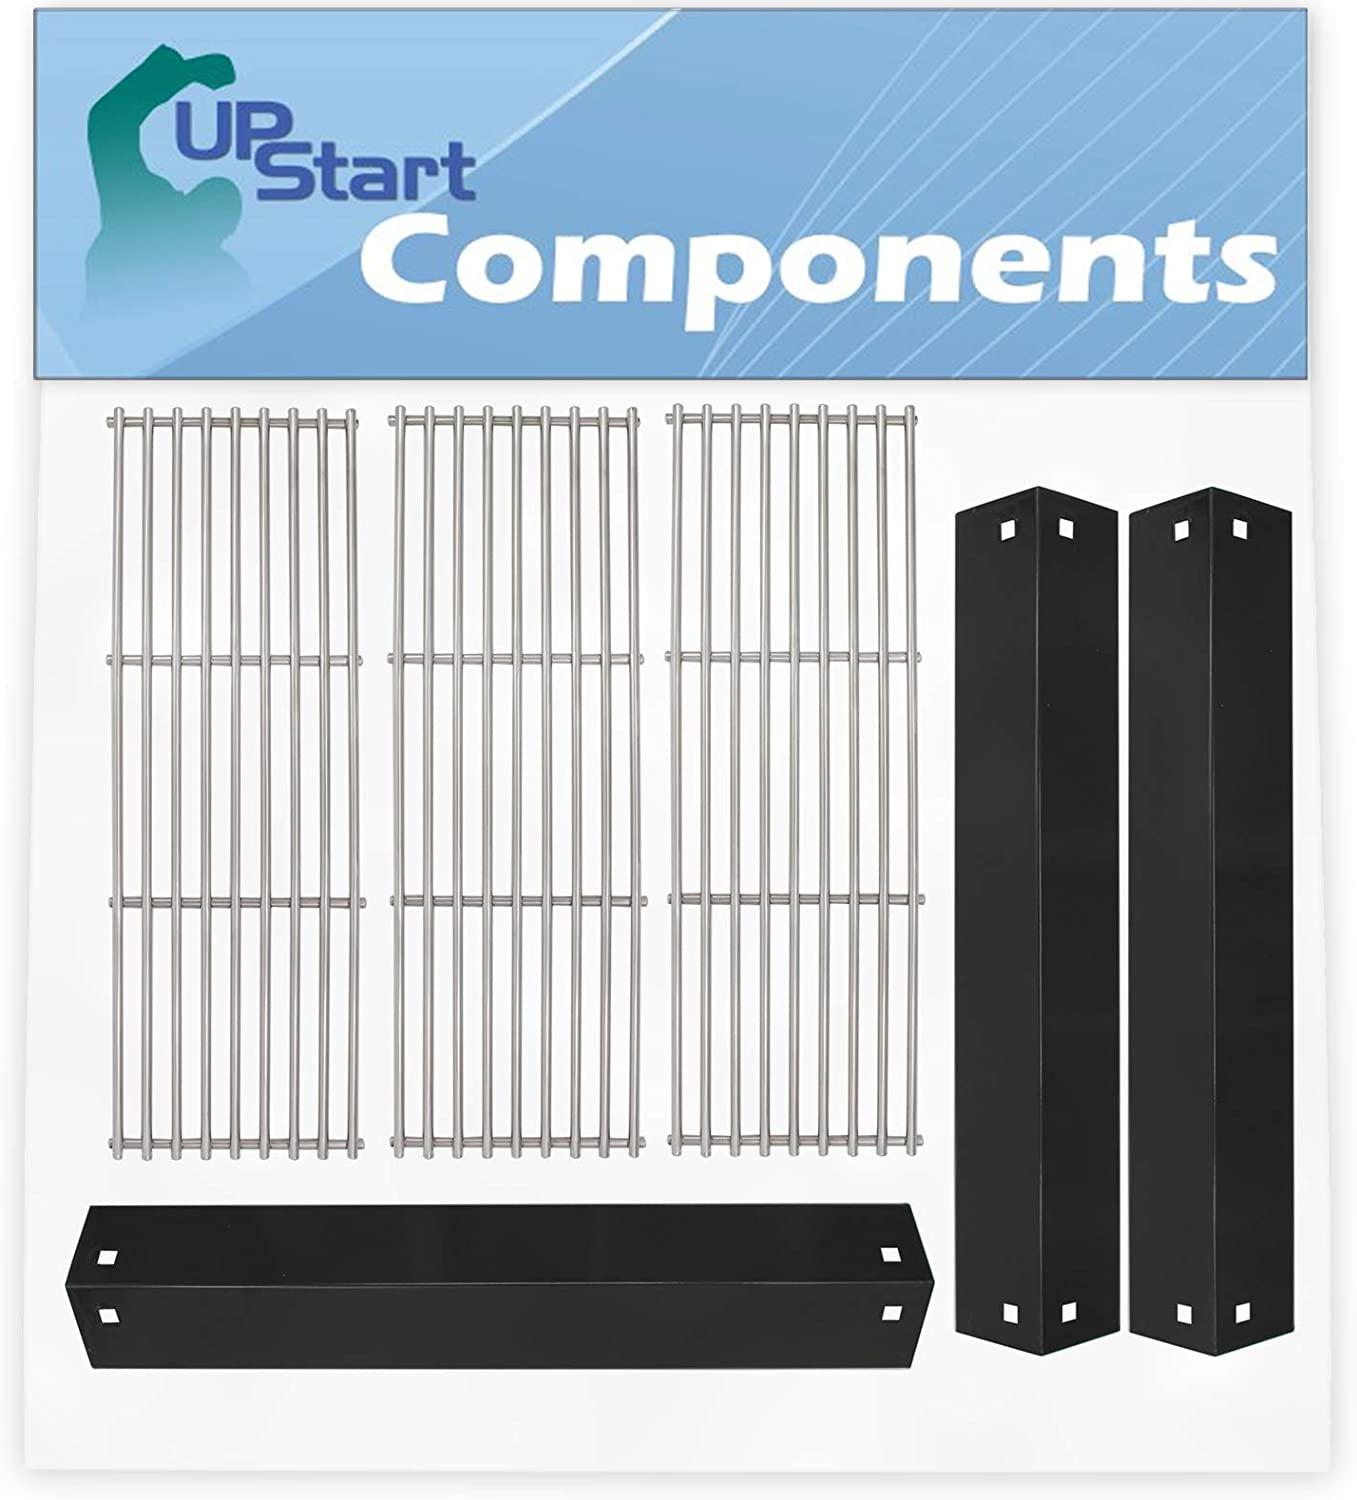 Bbq Grill Cooking Grates & Heat Shield Plate Tent Replacement Parts For Chargriller Barbecues - Compatible Bbq Stainless Steel Grid & Porcelain Steel Flame Tamer, Guard, Deflector, Flavorizer Bar